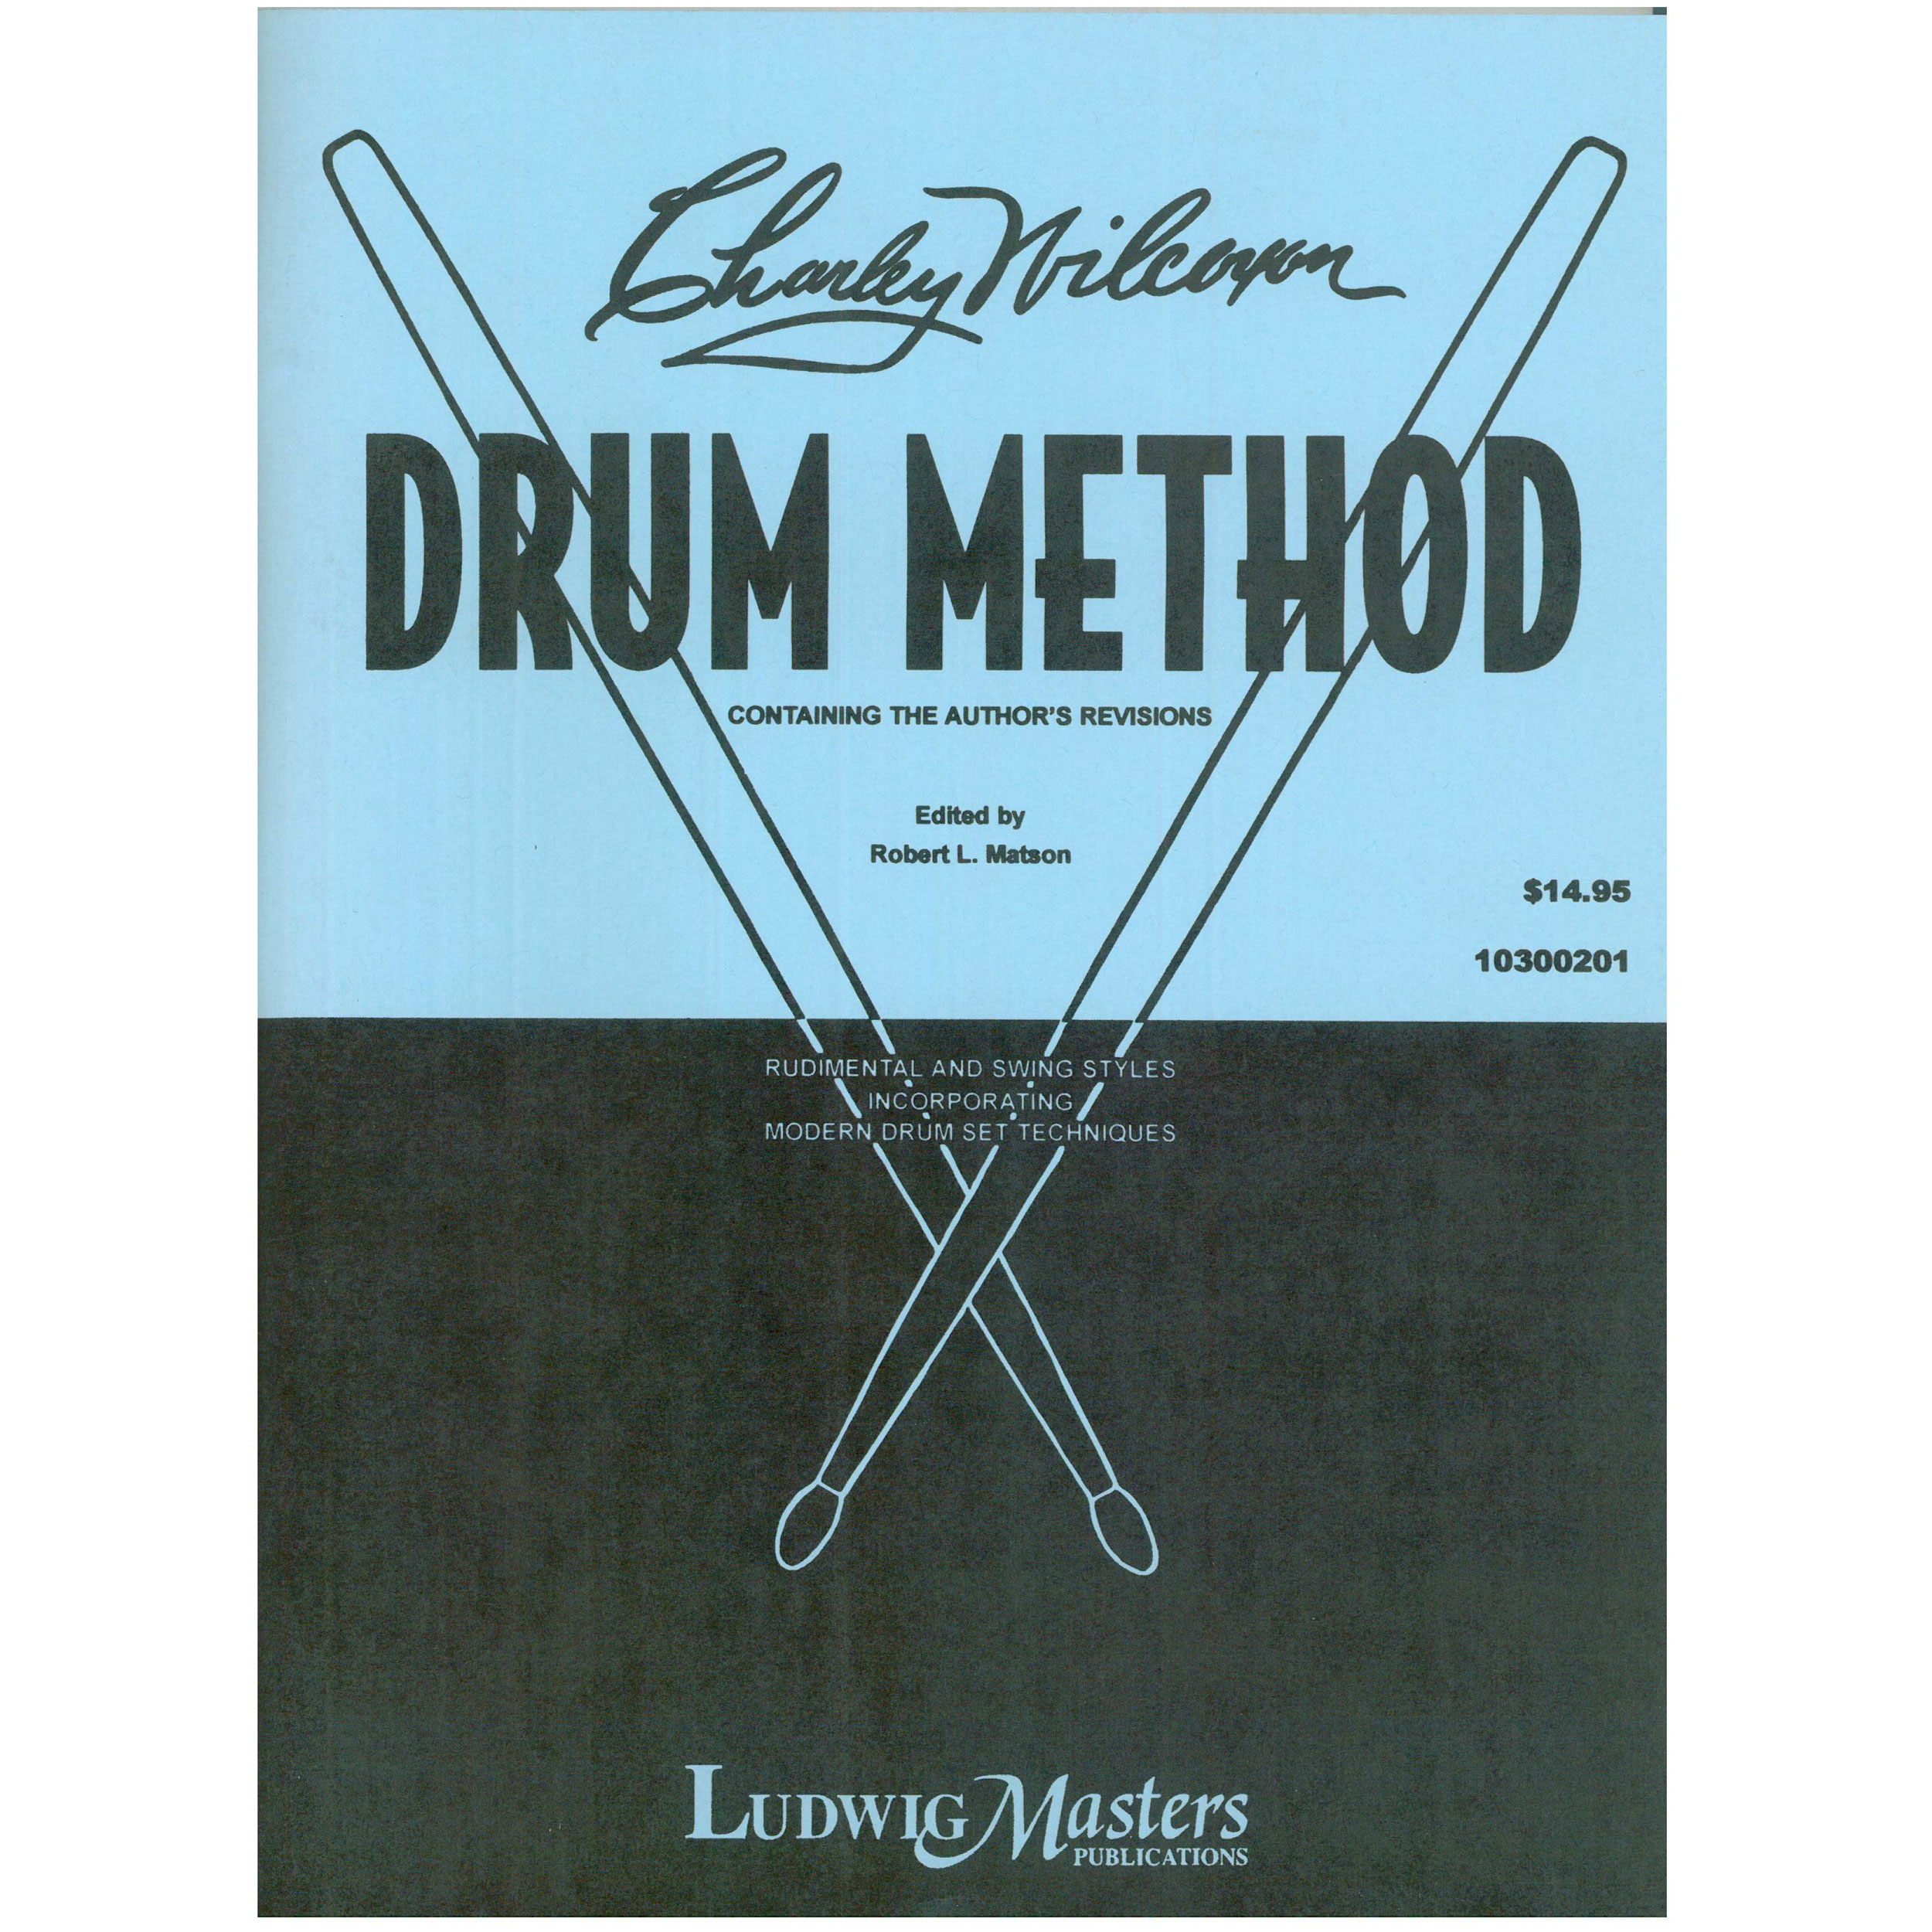 Drum Method by Charley Wilcoxon